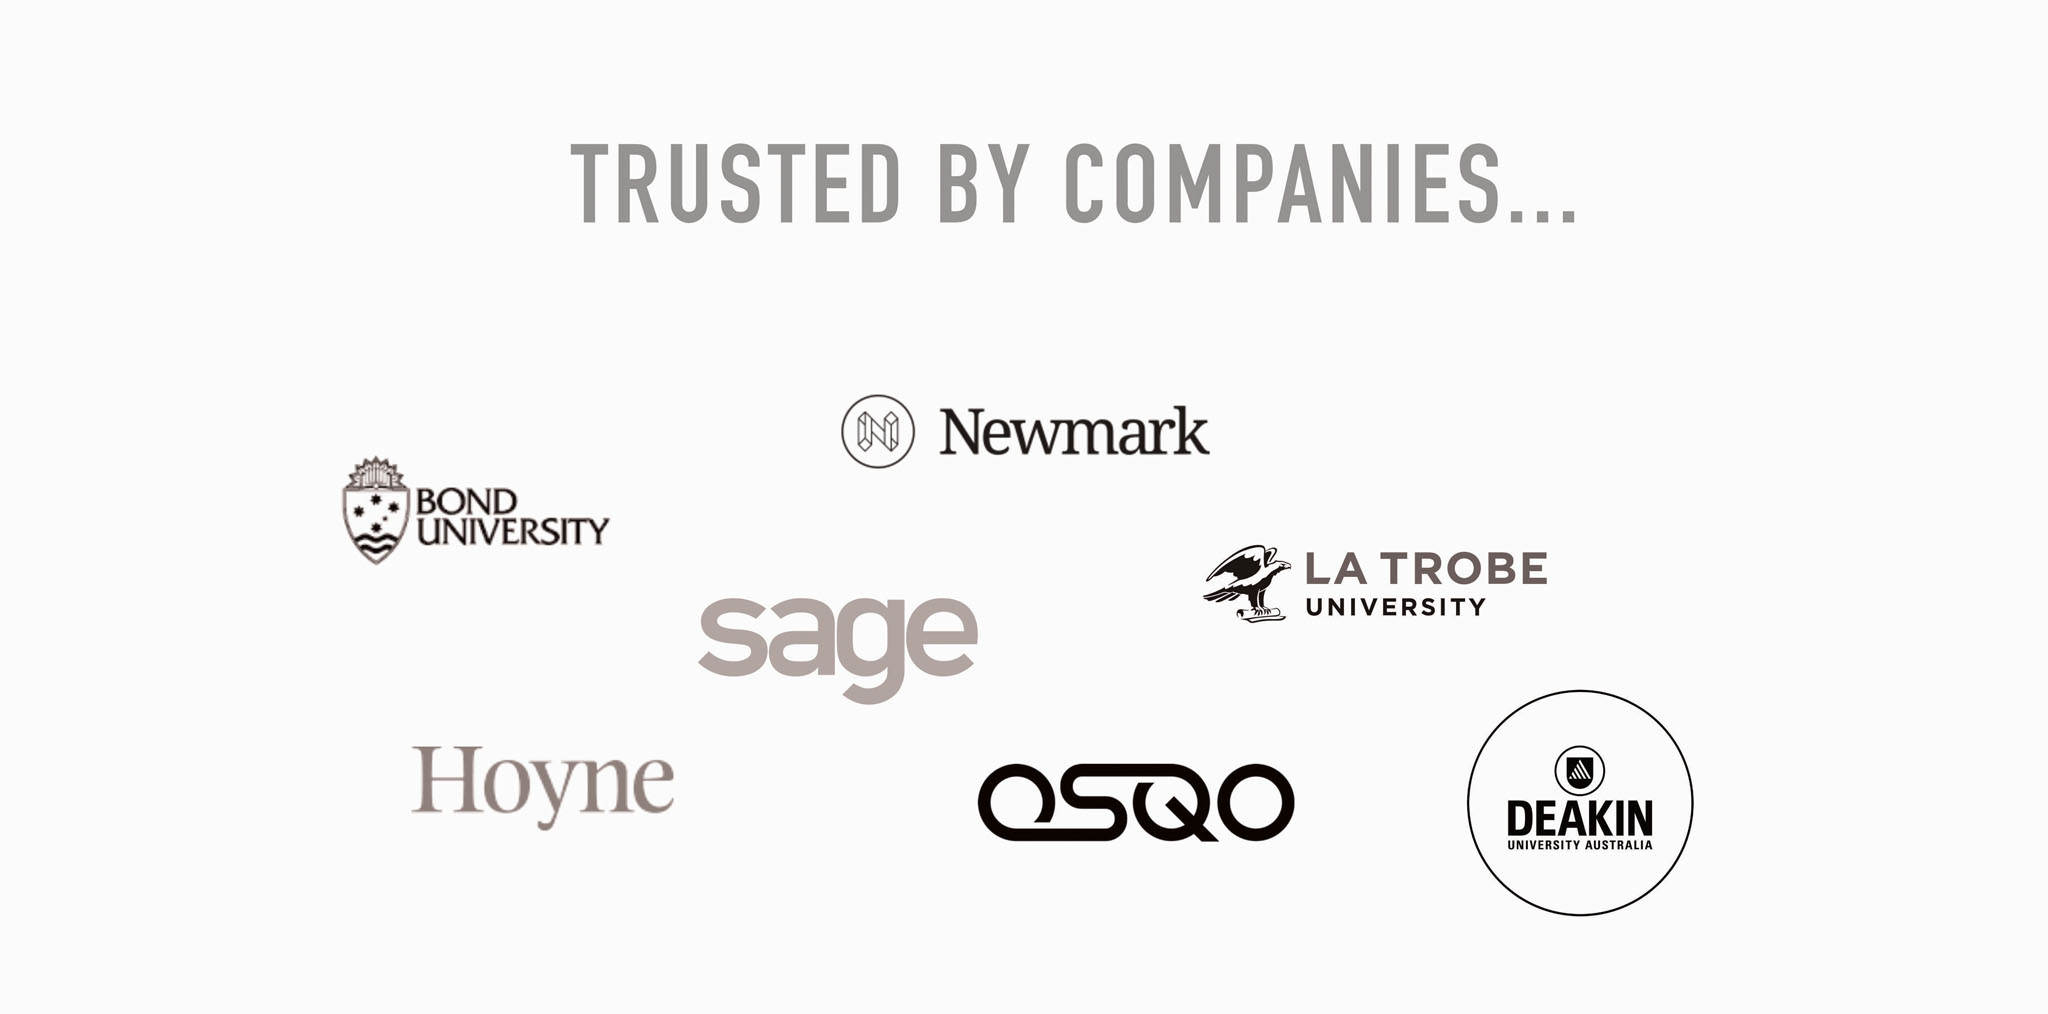 Trusted by companies